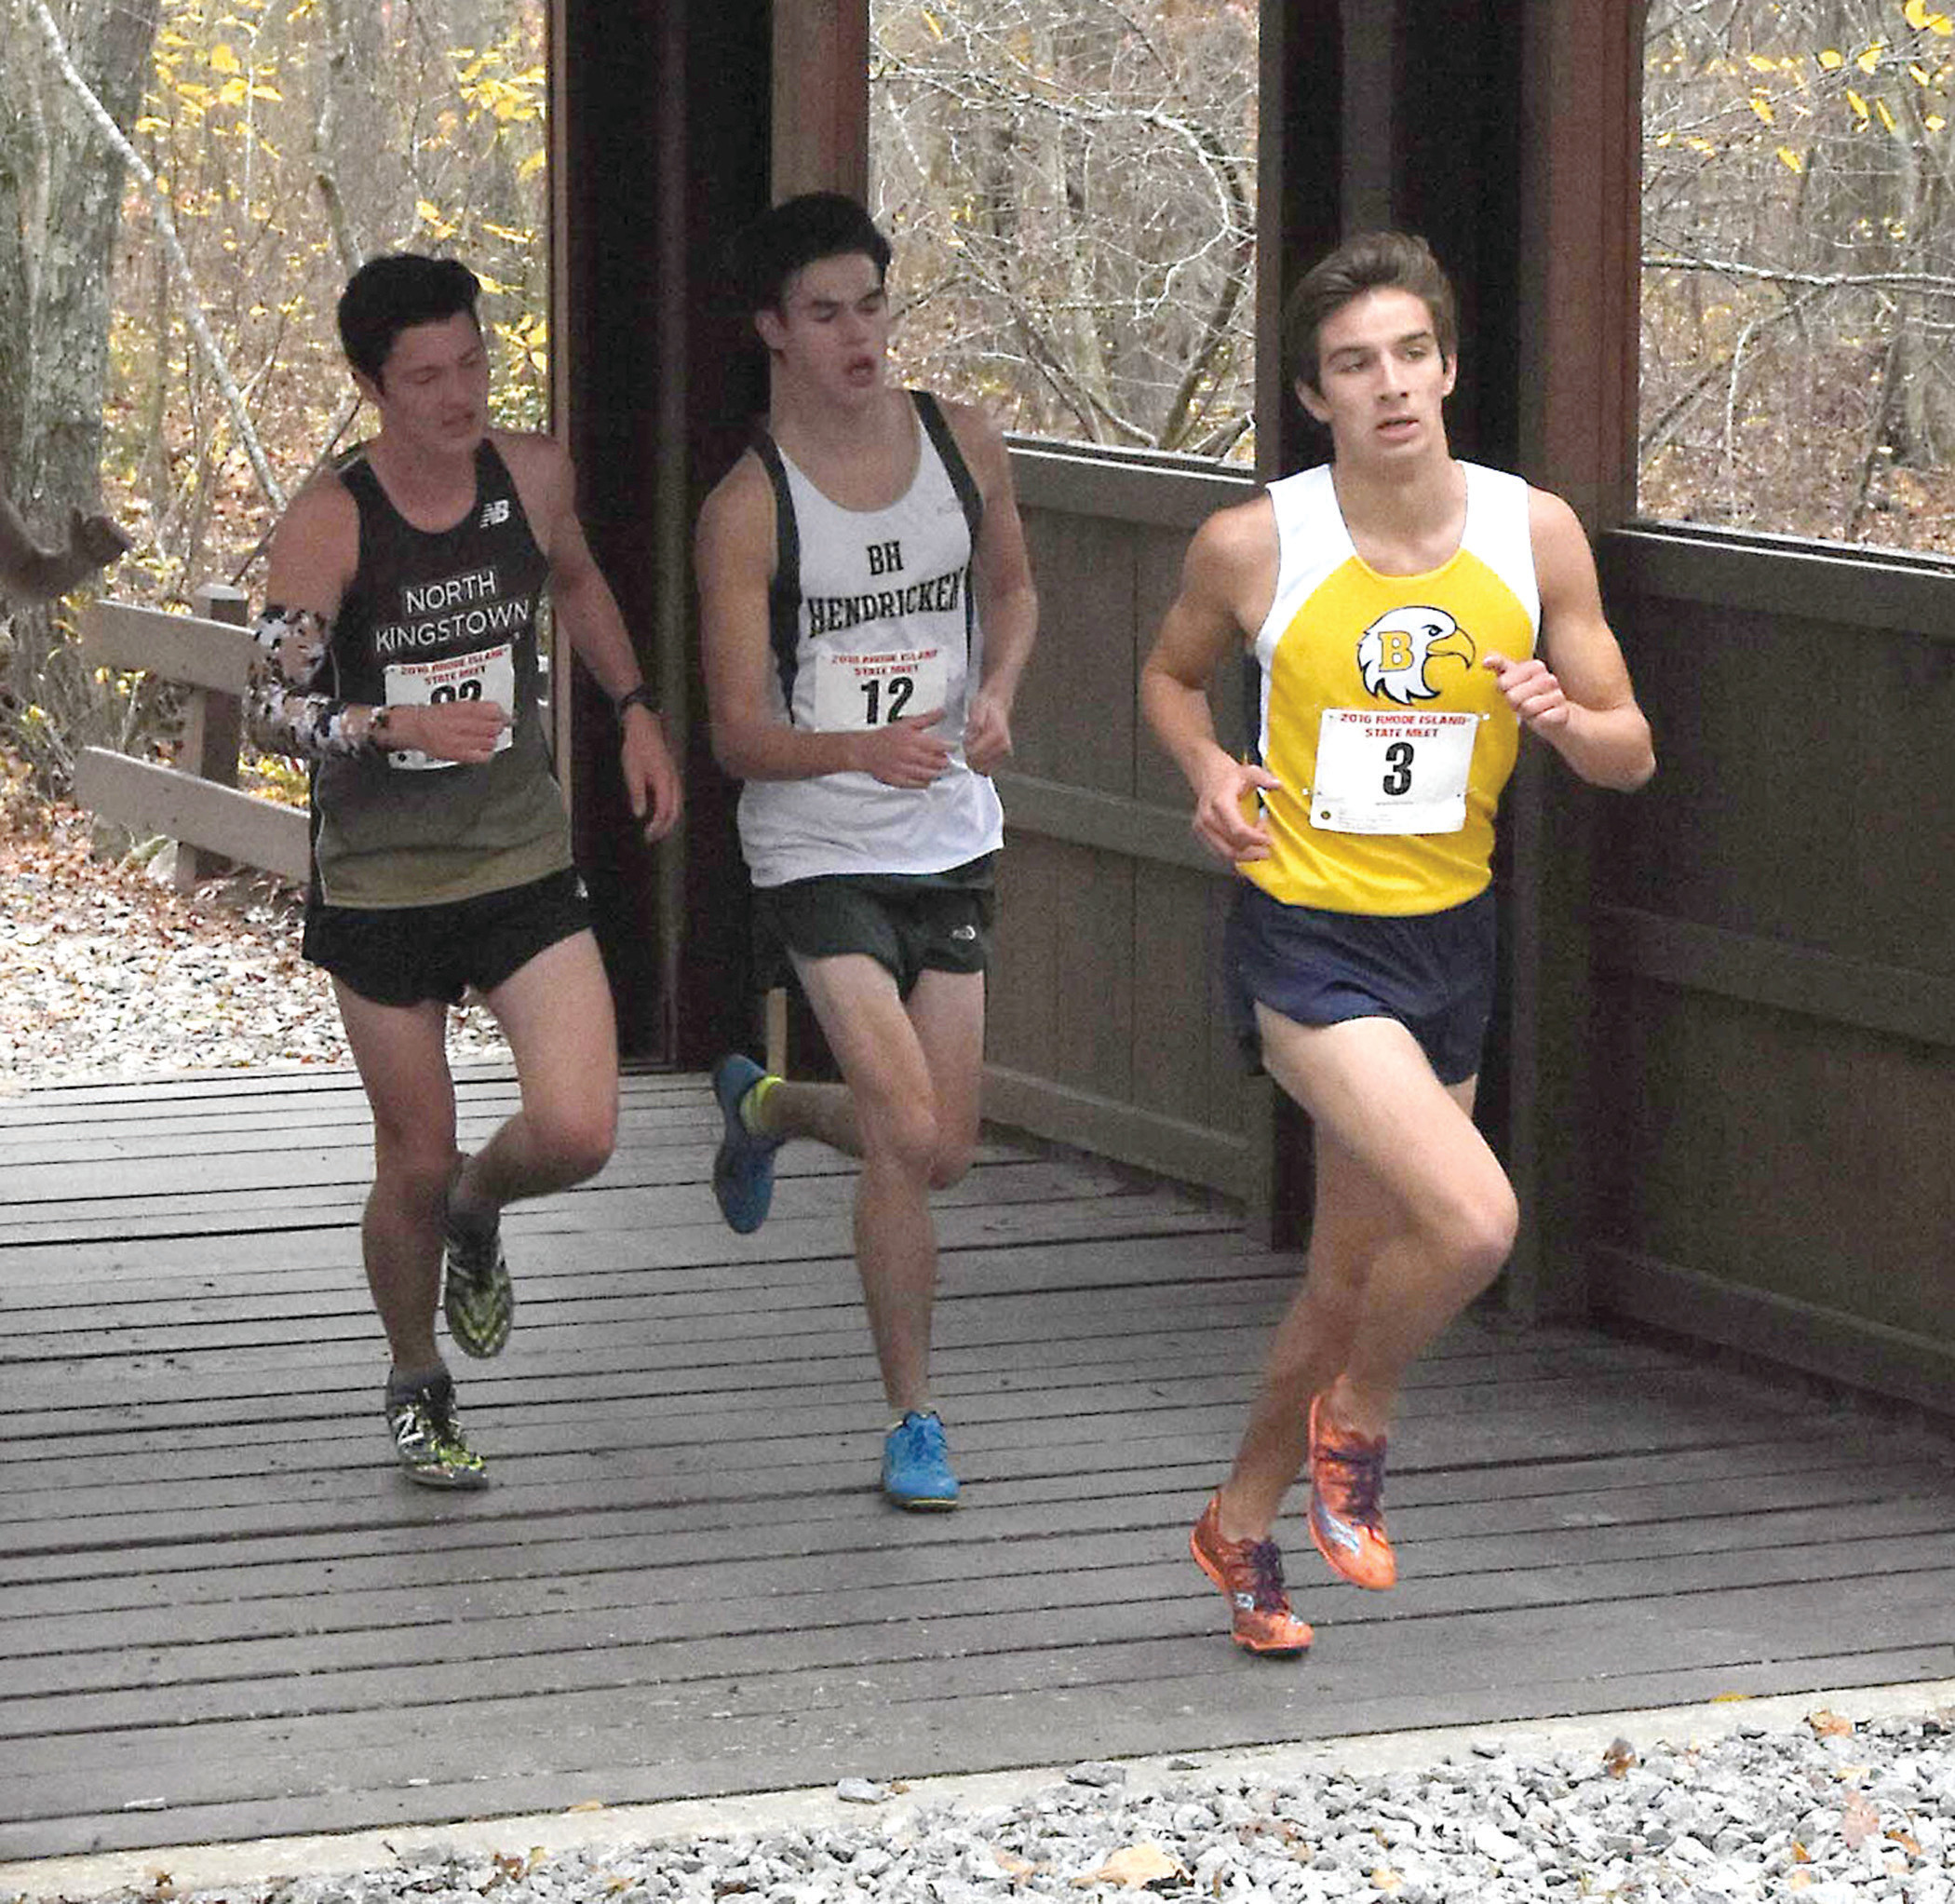 Aidan Tierney was Hendricken's top finisher in Cary, North Carolina.